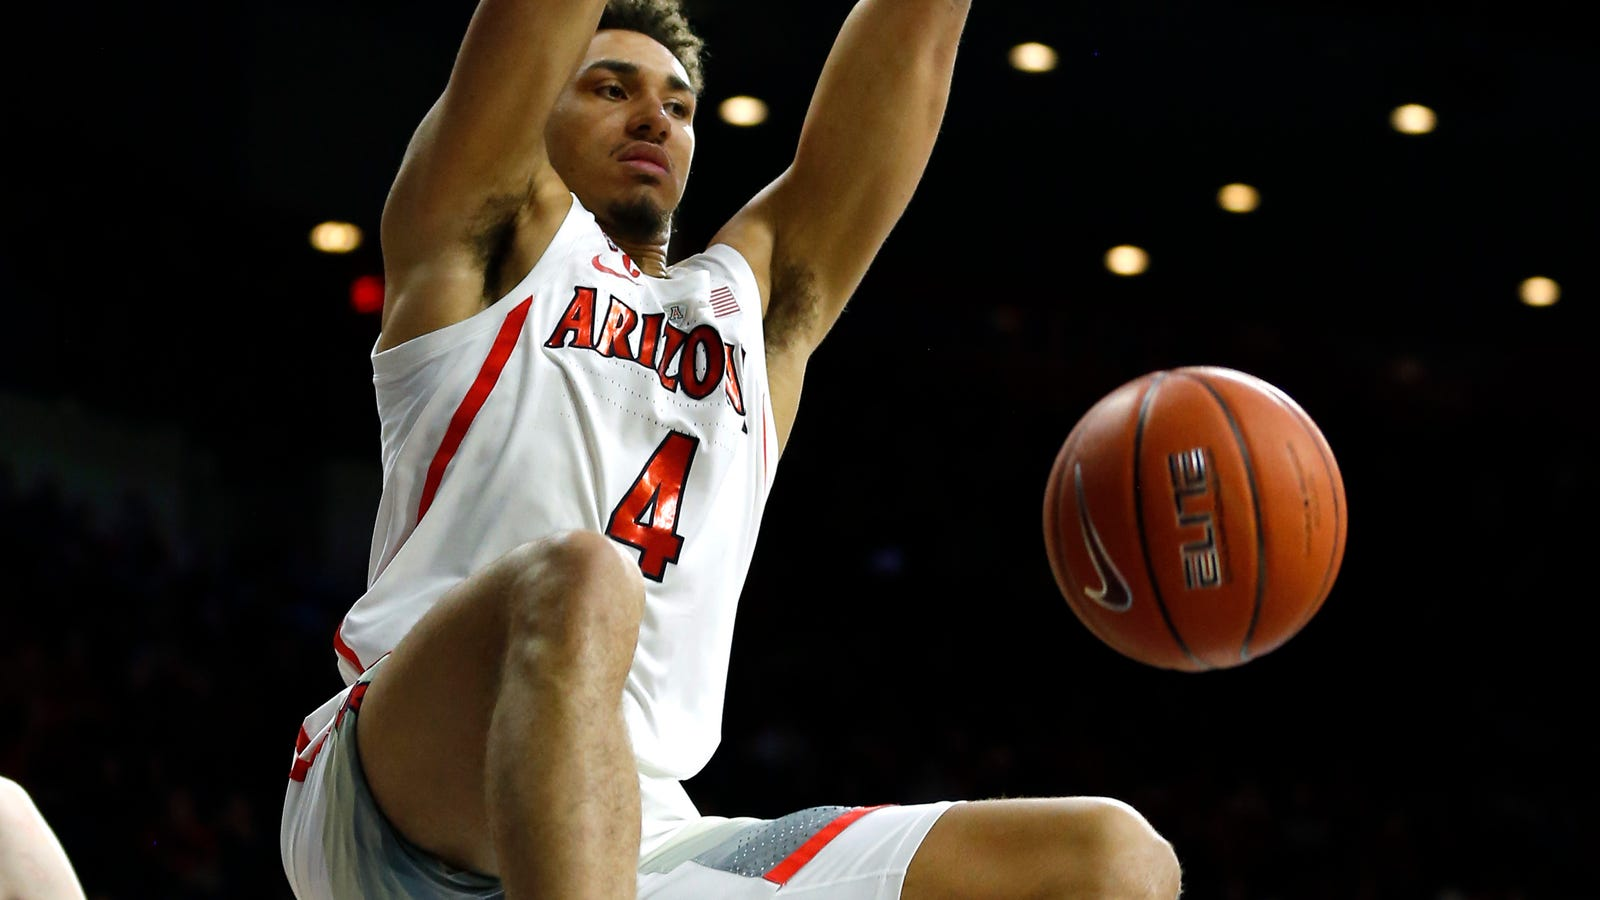 Arizona ends 7-game losing streak with 76-51 win over Cal